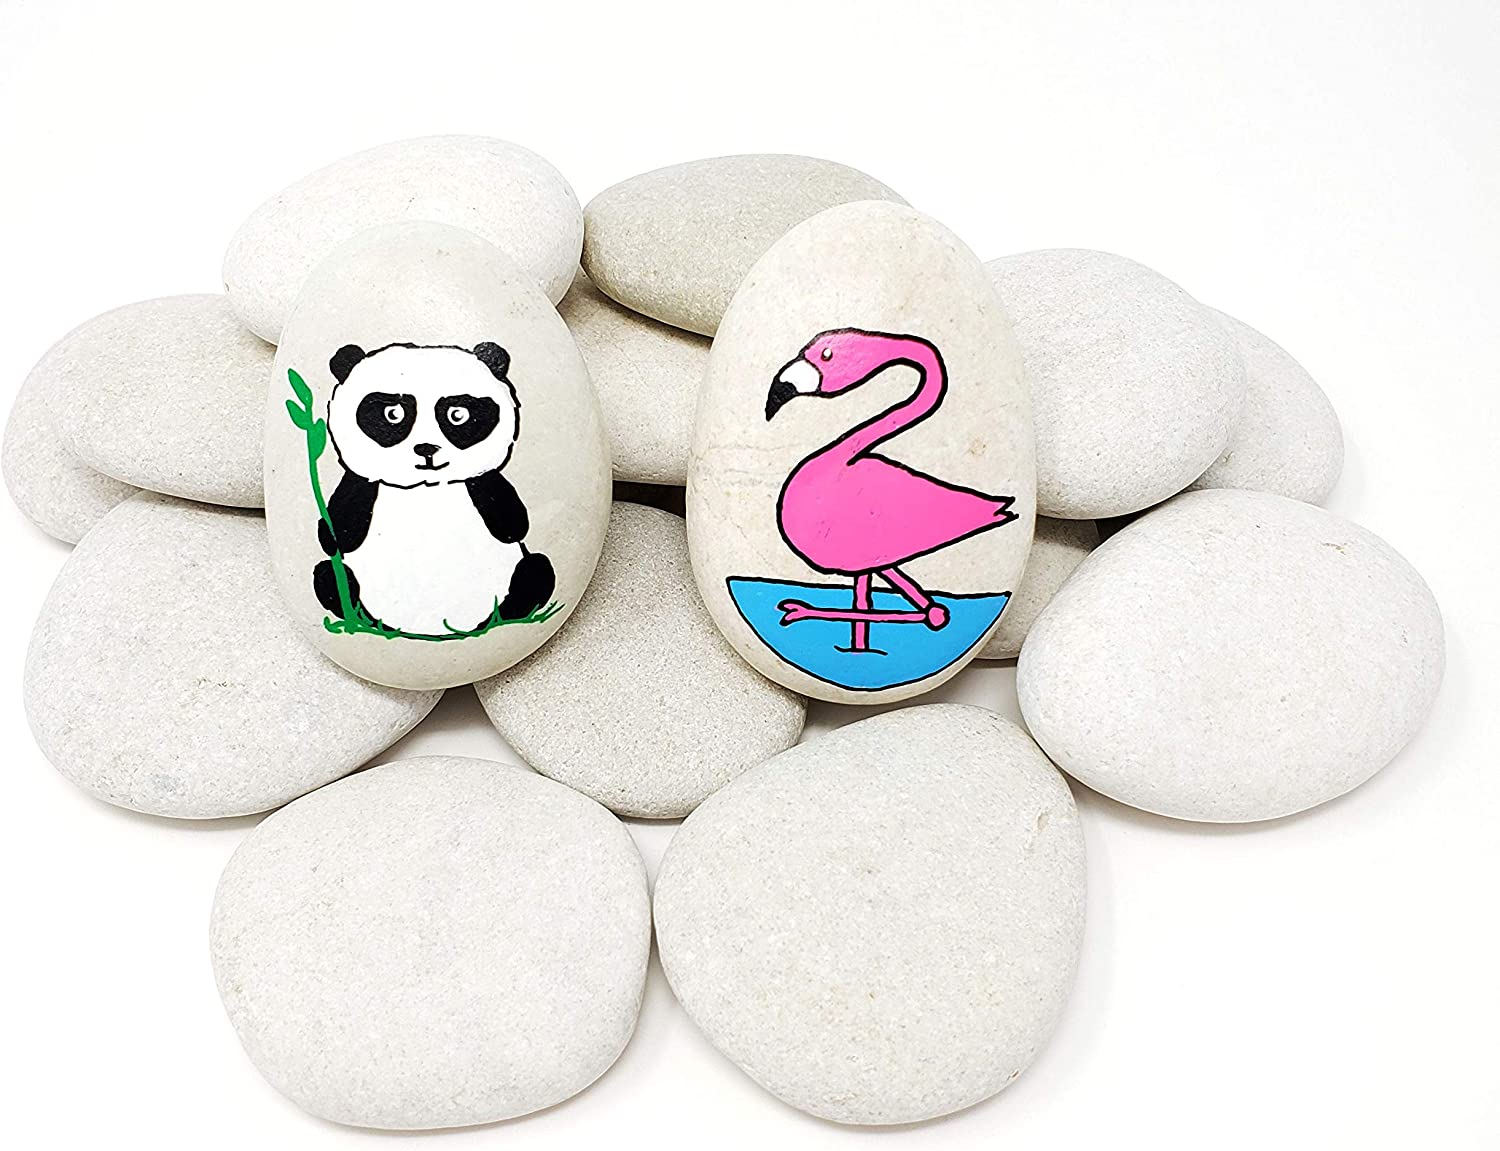 Capcouriers Painting Rocks - Rocks for Painting Kindness Rocks - About 2 inches in Length - 20 Rocks